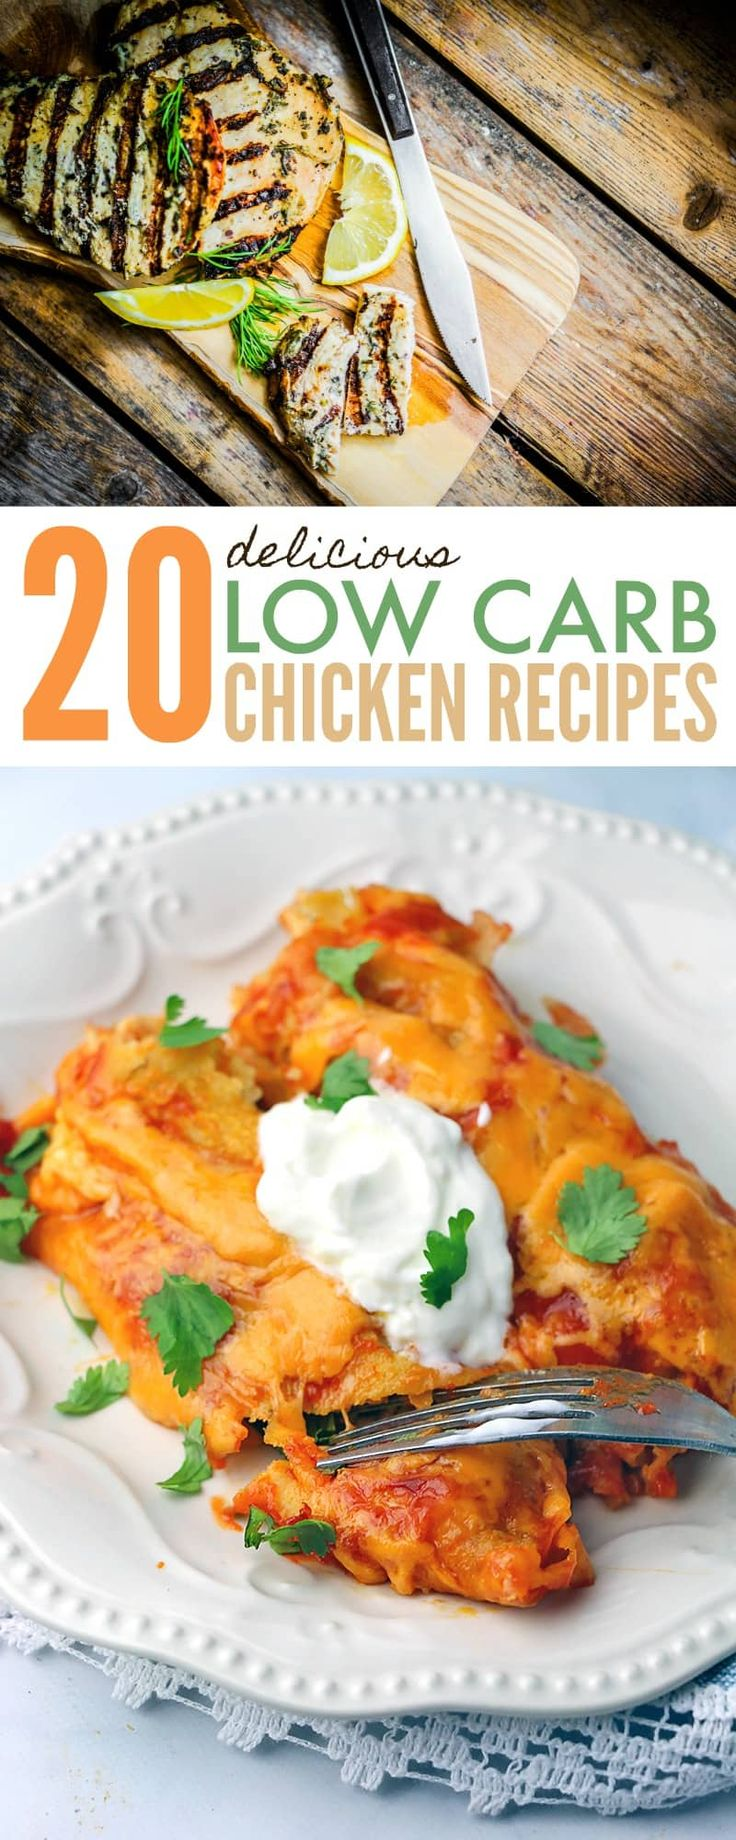 Low carb chicken recipes - variety of 20 delicious recipes for your low carb, ketogenic or paleo diet plan. May work for 21 Day Fix & Whole 30 too! https://www.730sagestreet.com/20-delicious-low-carb-chicken-recipes/